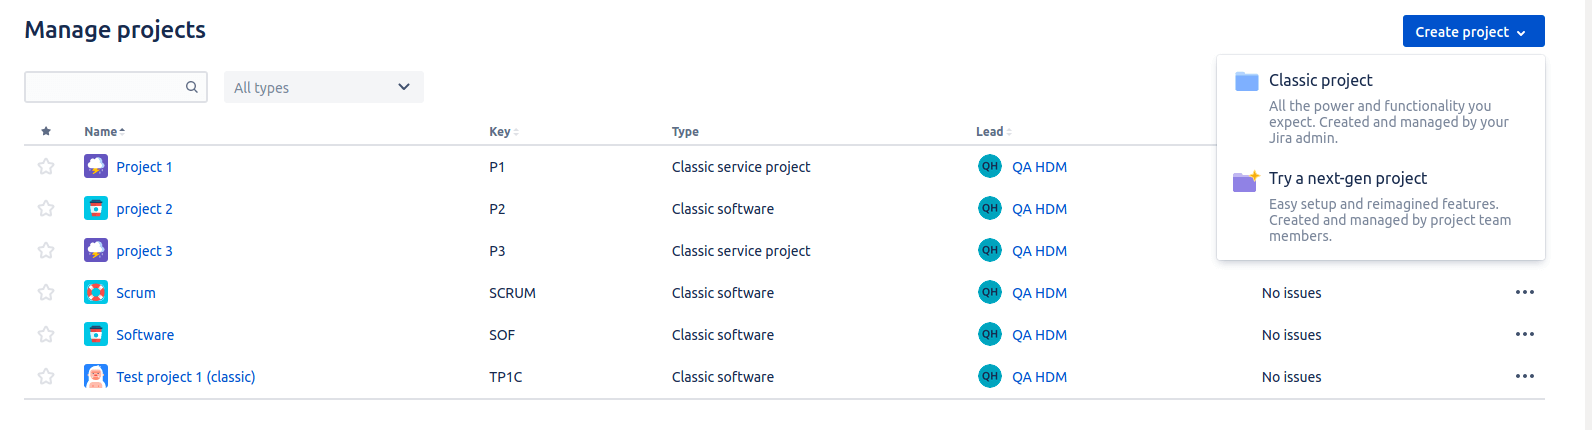 creating classic project in jira service management